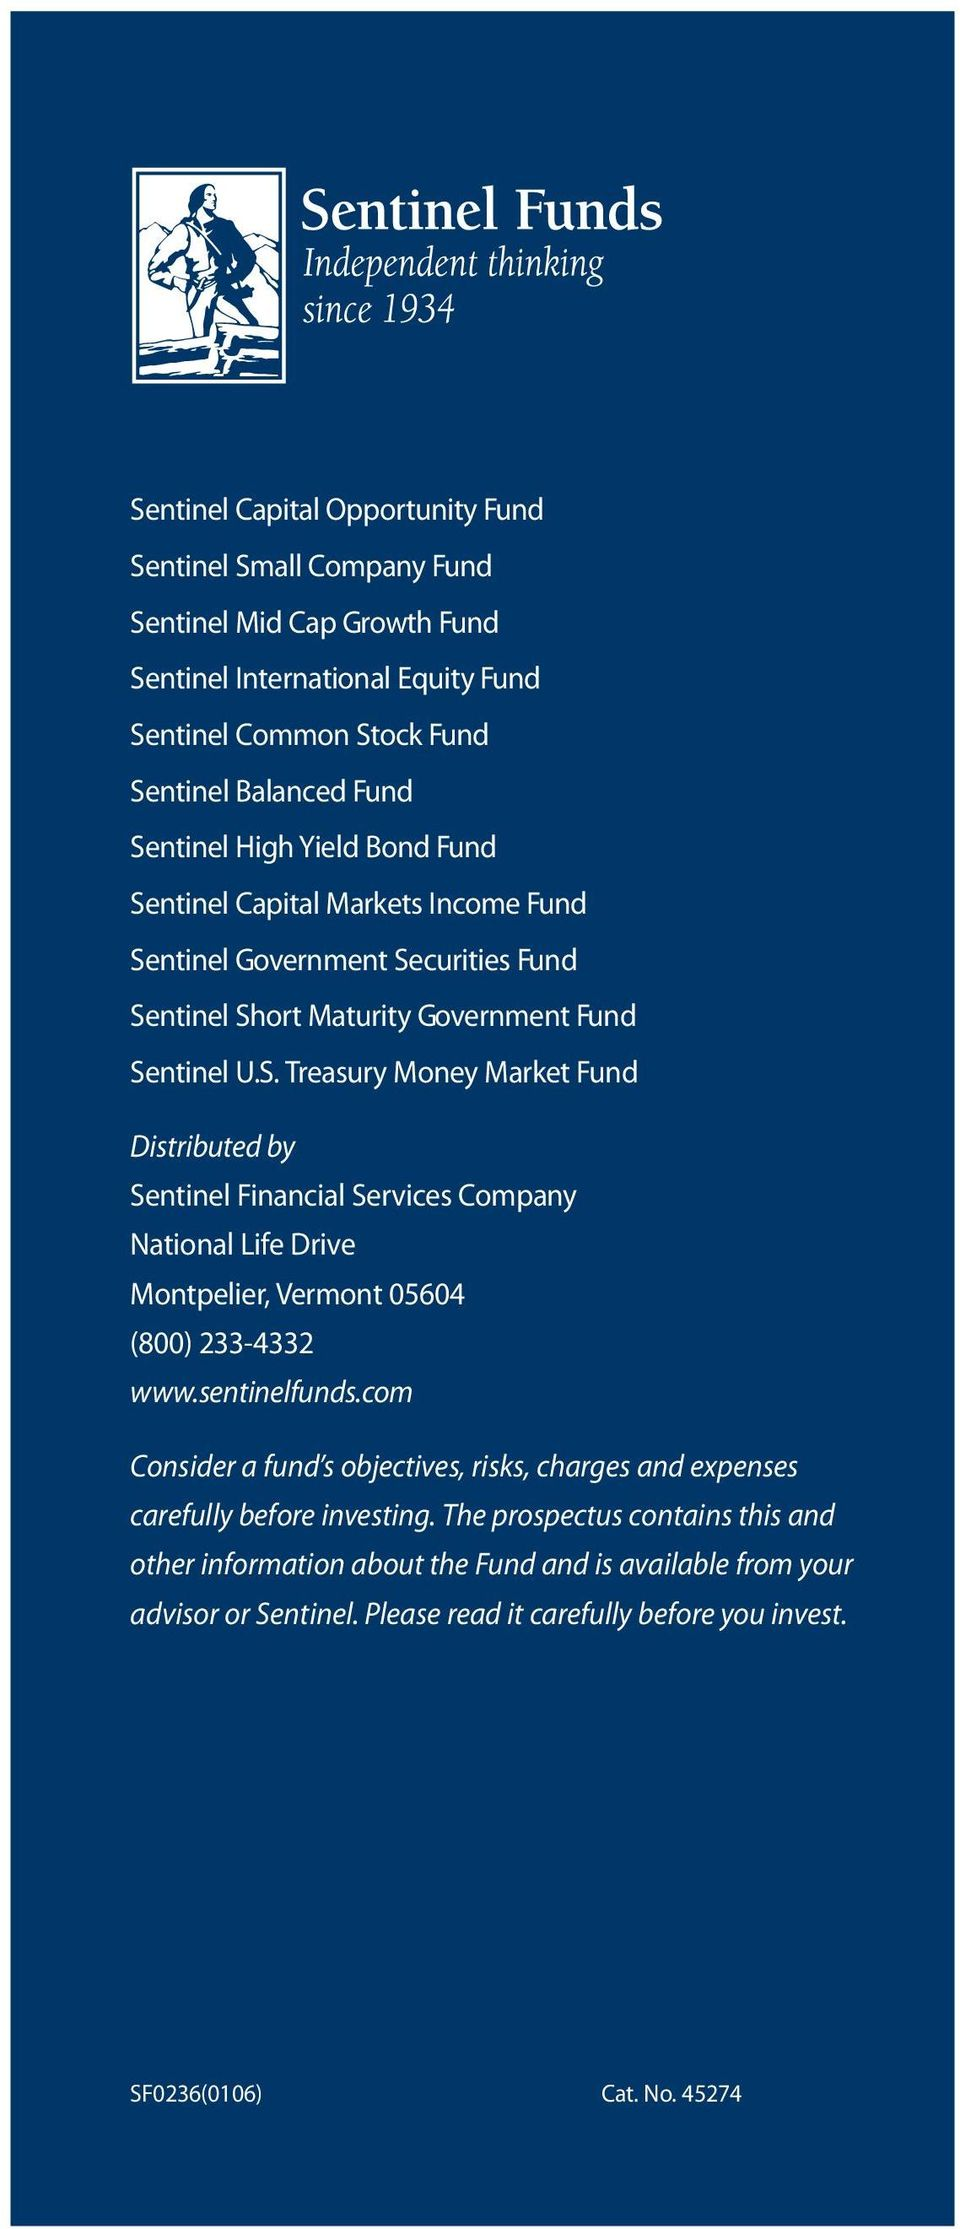 sentinelfunds.com Consider a fund s objectives, risks, charges and expenses carefully before investing.